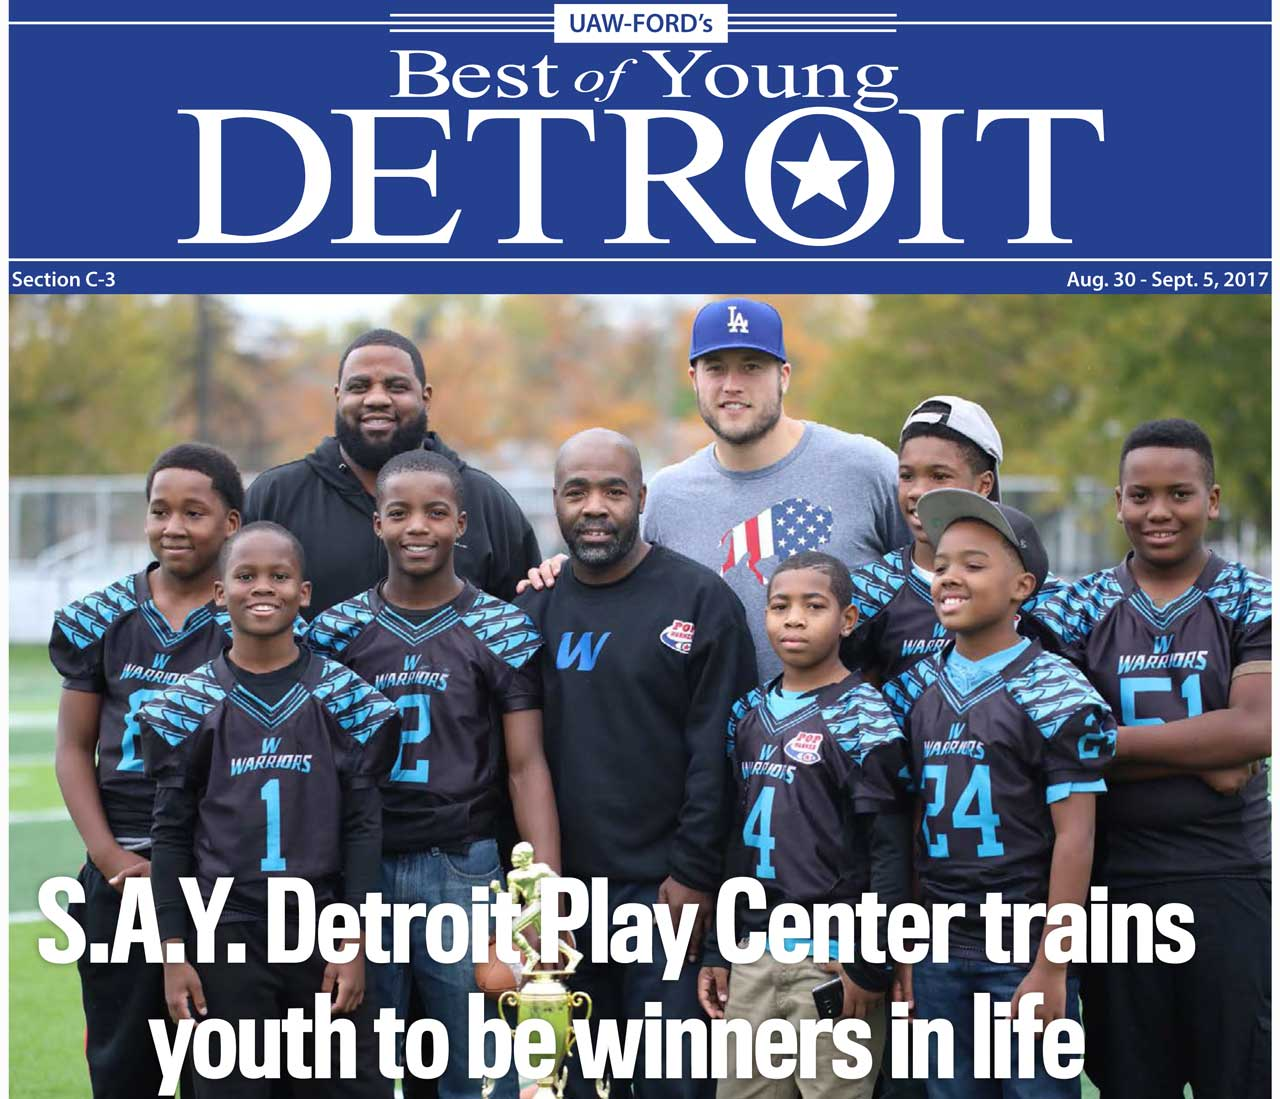 The Best of Young Detroit